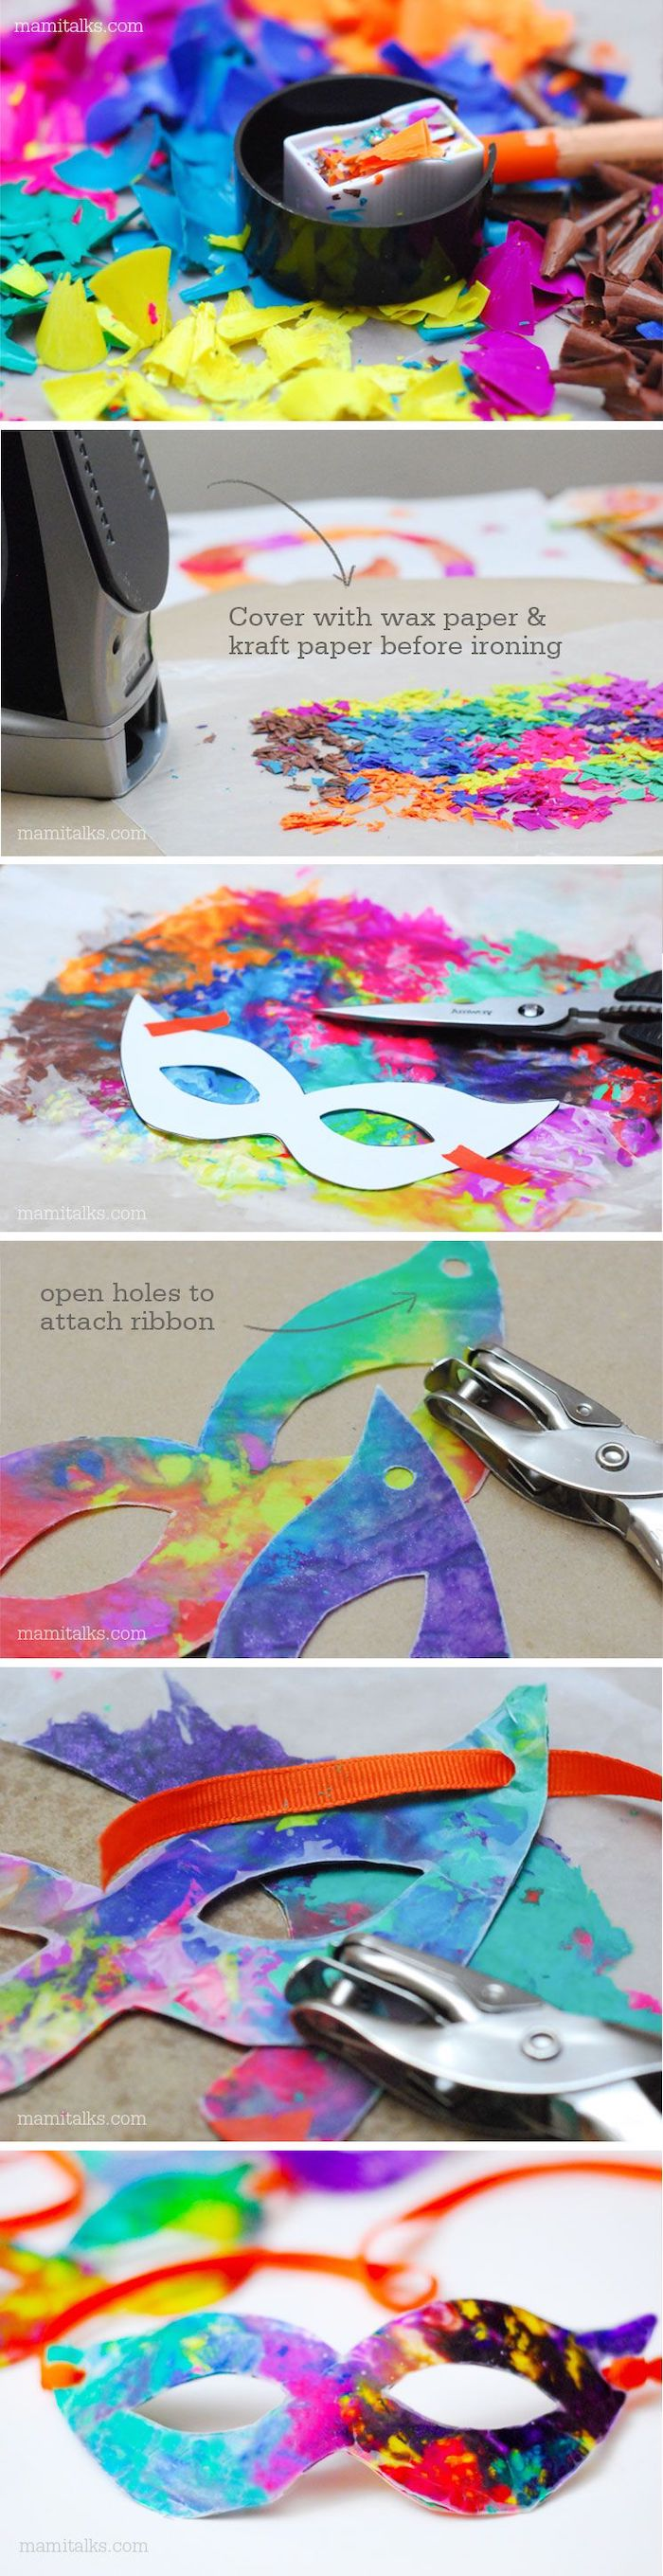 photo collage of step by step diy tutorial, masquerade masks for men, colorful masks made with crayons